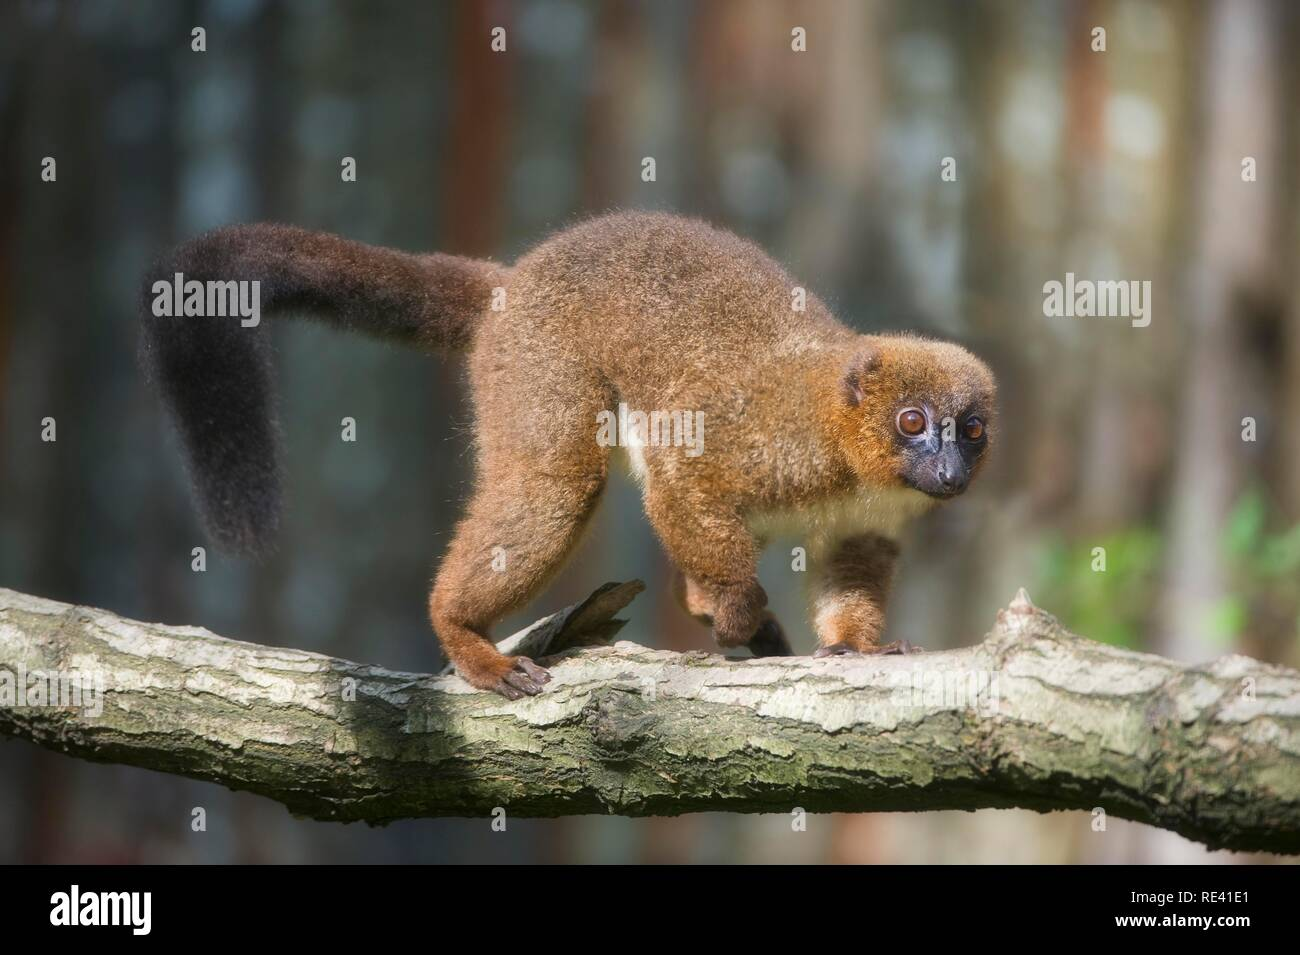 Red-bellied Lemur (Eulemur rubriventer), listed as Vulnerable by the IUCN 2009, endemic to Madagascar - Stock Image